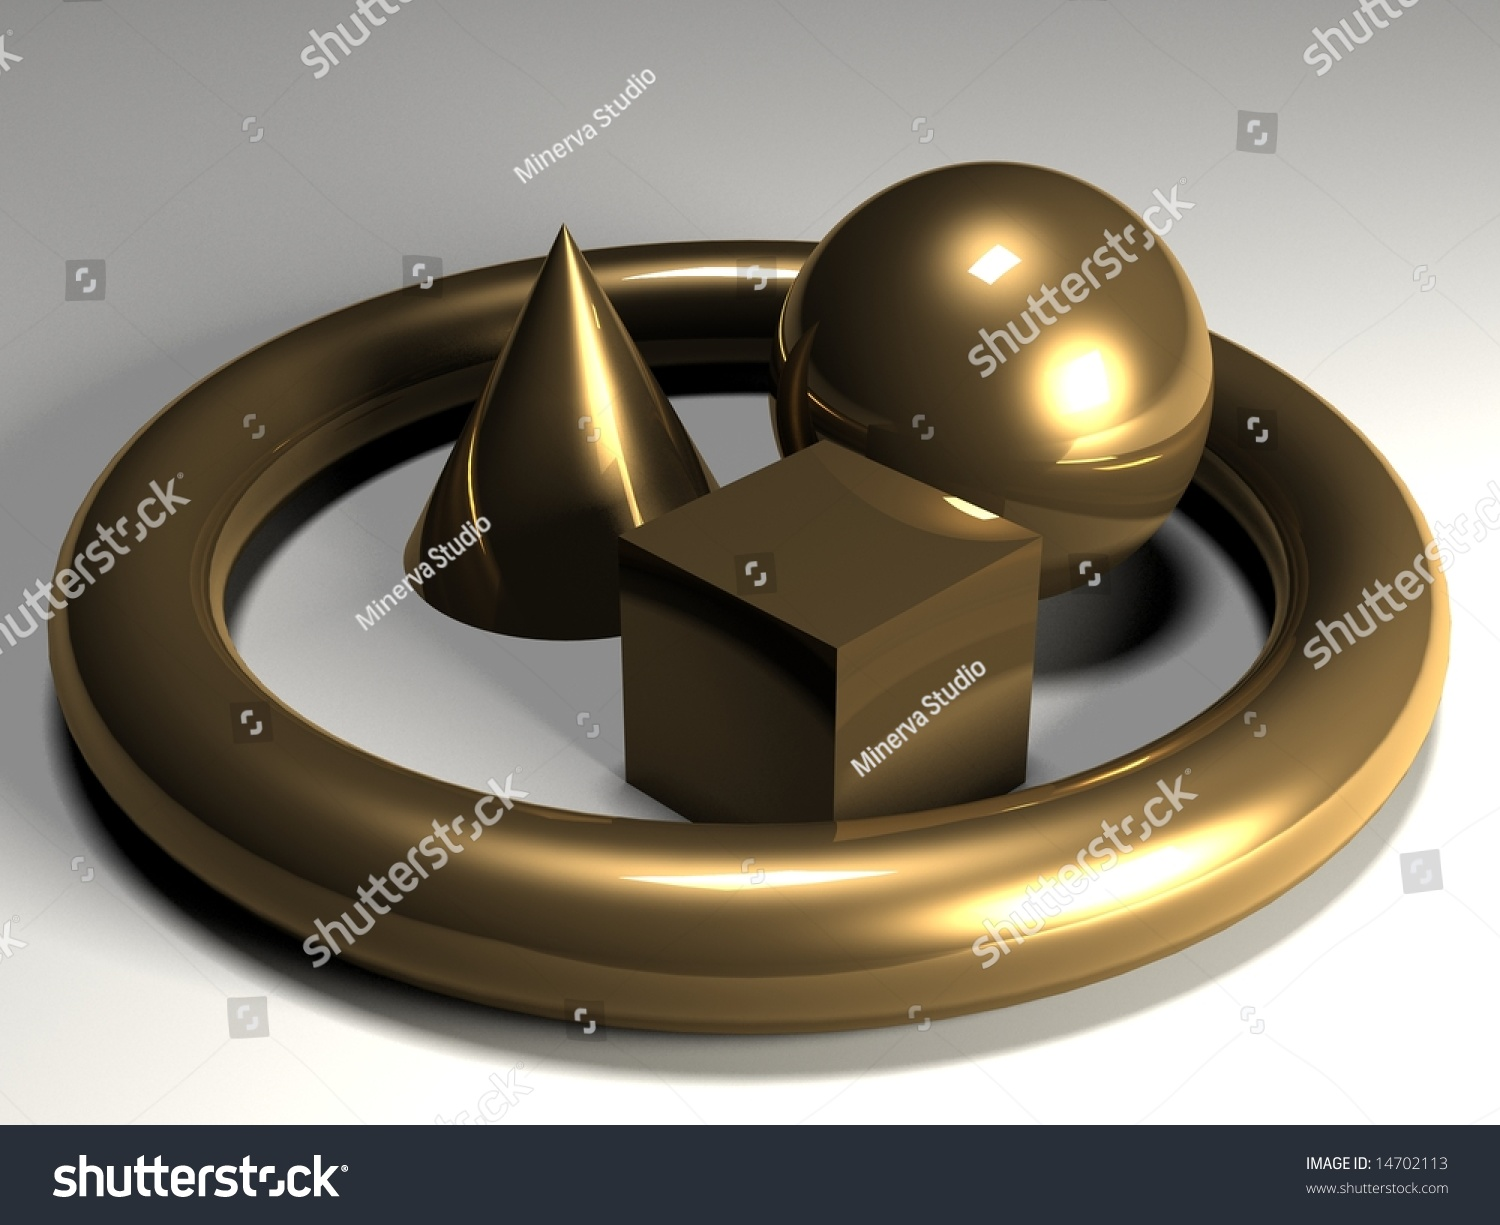 Glassy Solid Shapes Resembling A Cone A Torus A Cube And